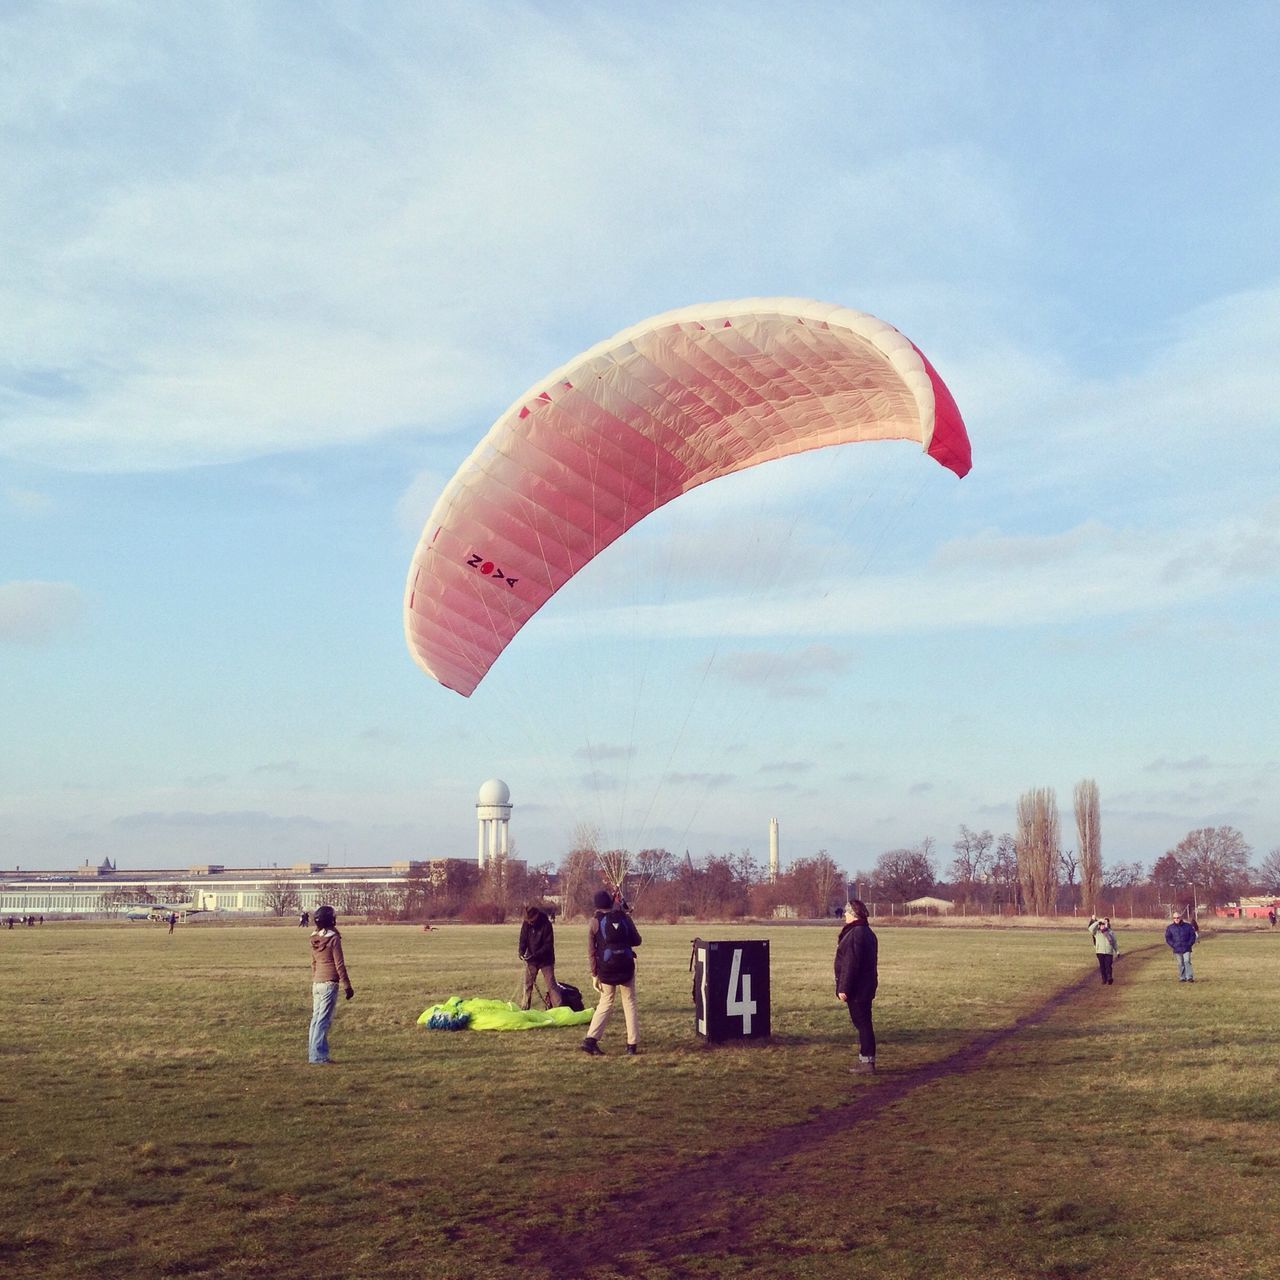 real people, leisure activity, sport, parachute, lifestyles, sky, adventure, day, large group of people, men, grass, outdoors, extreme sports, landscape, paragliding, full length, nature, people, adult